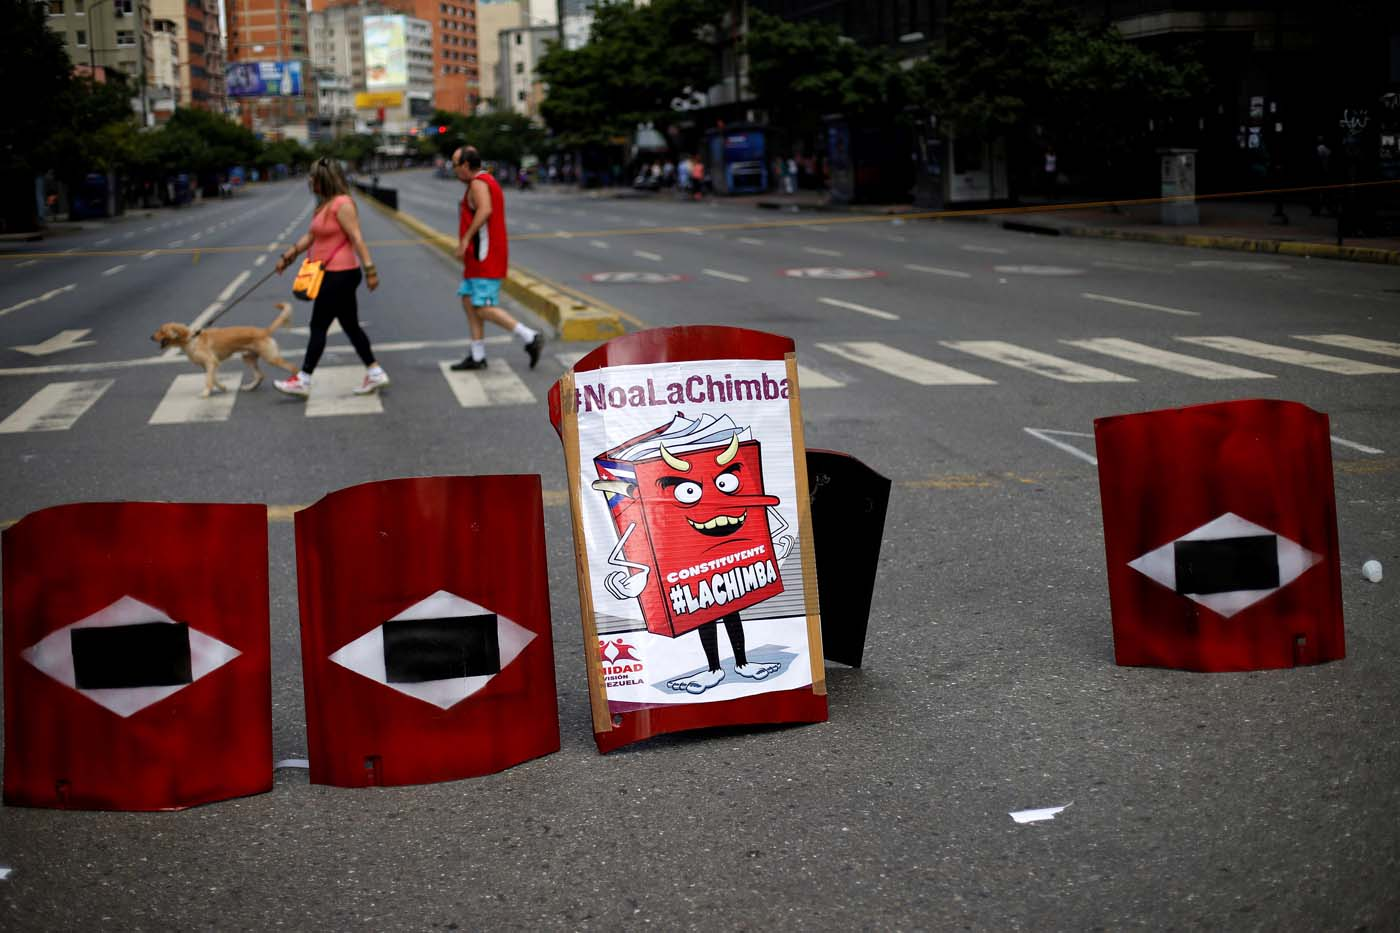 """Makeshift shields lie on a blocked road during a strike called to protest against Venezuelan President Nicolas Maduro's government in Caracas, Venezuela July 26, 2017. On the shield reads """"Constituent"""" REUTERS/Andres Martinez Casares"""